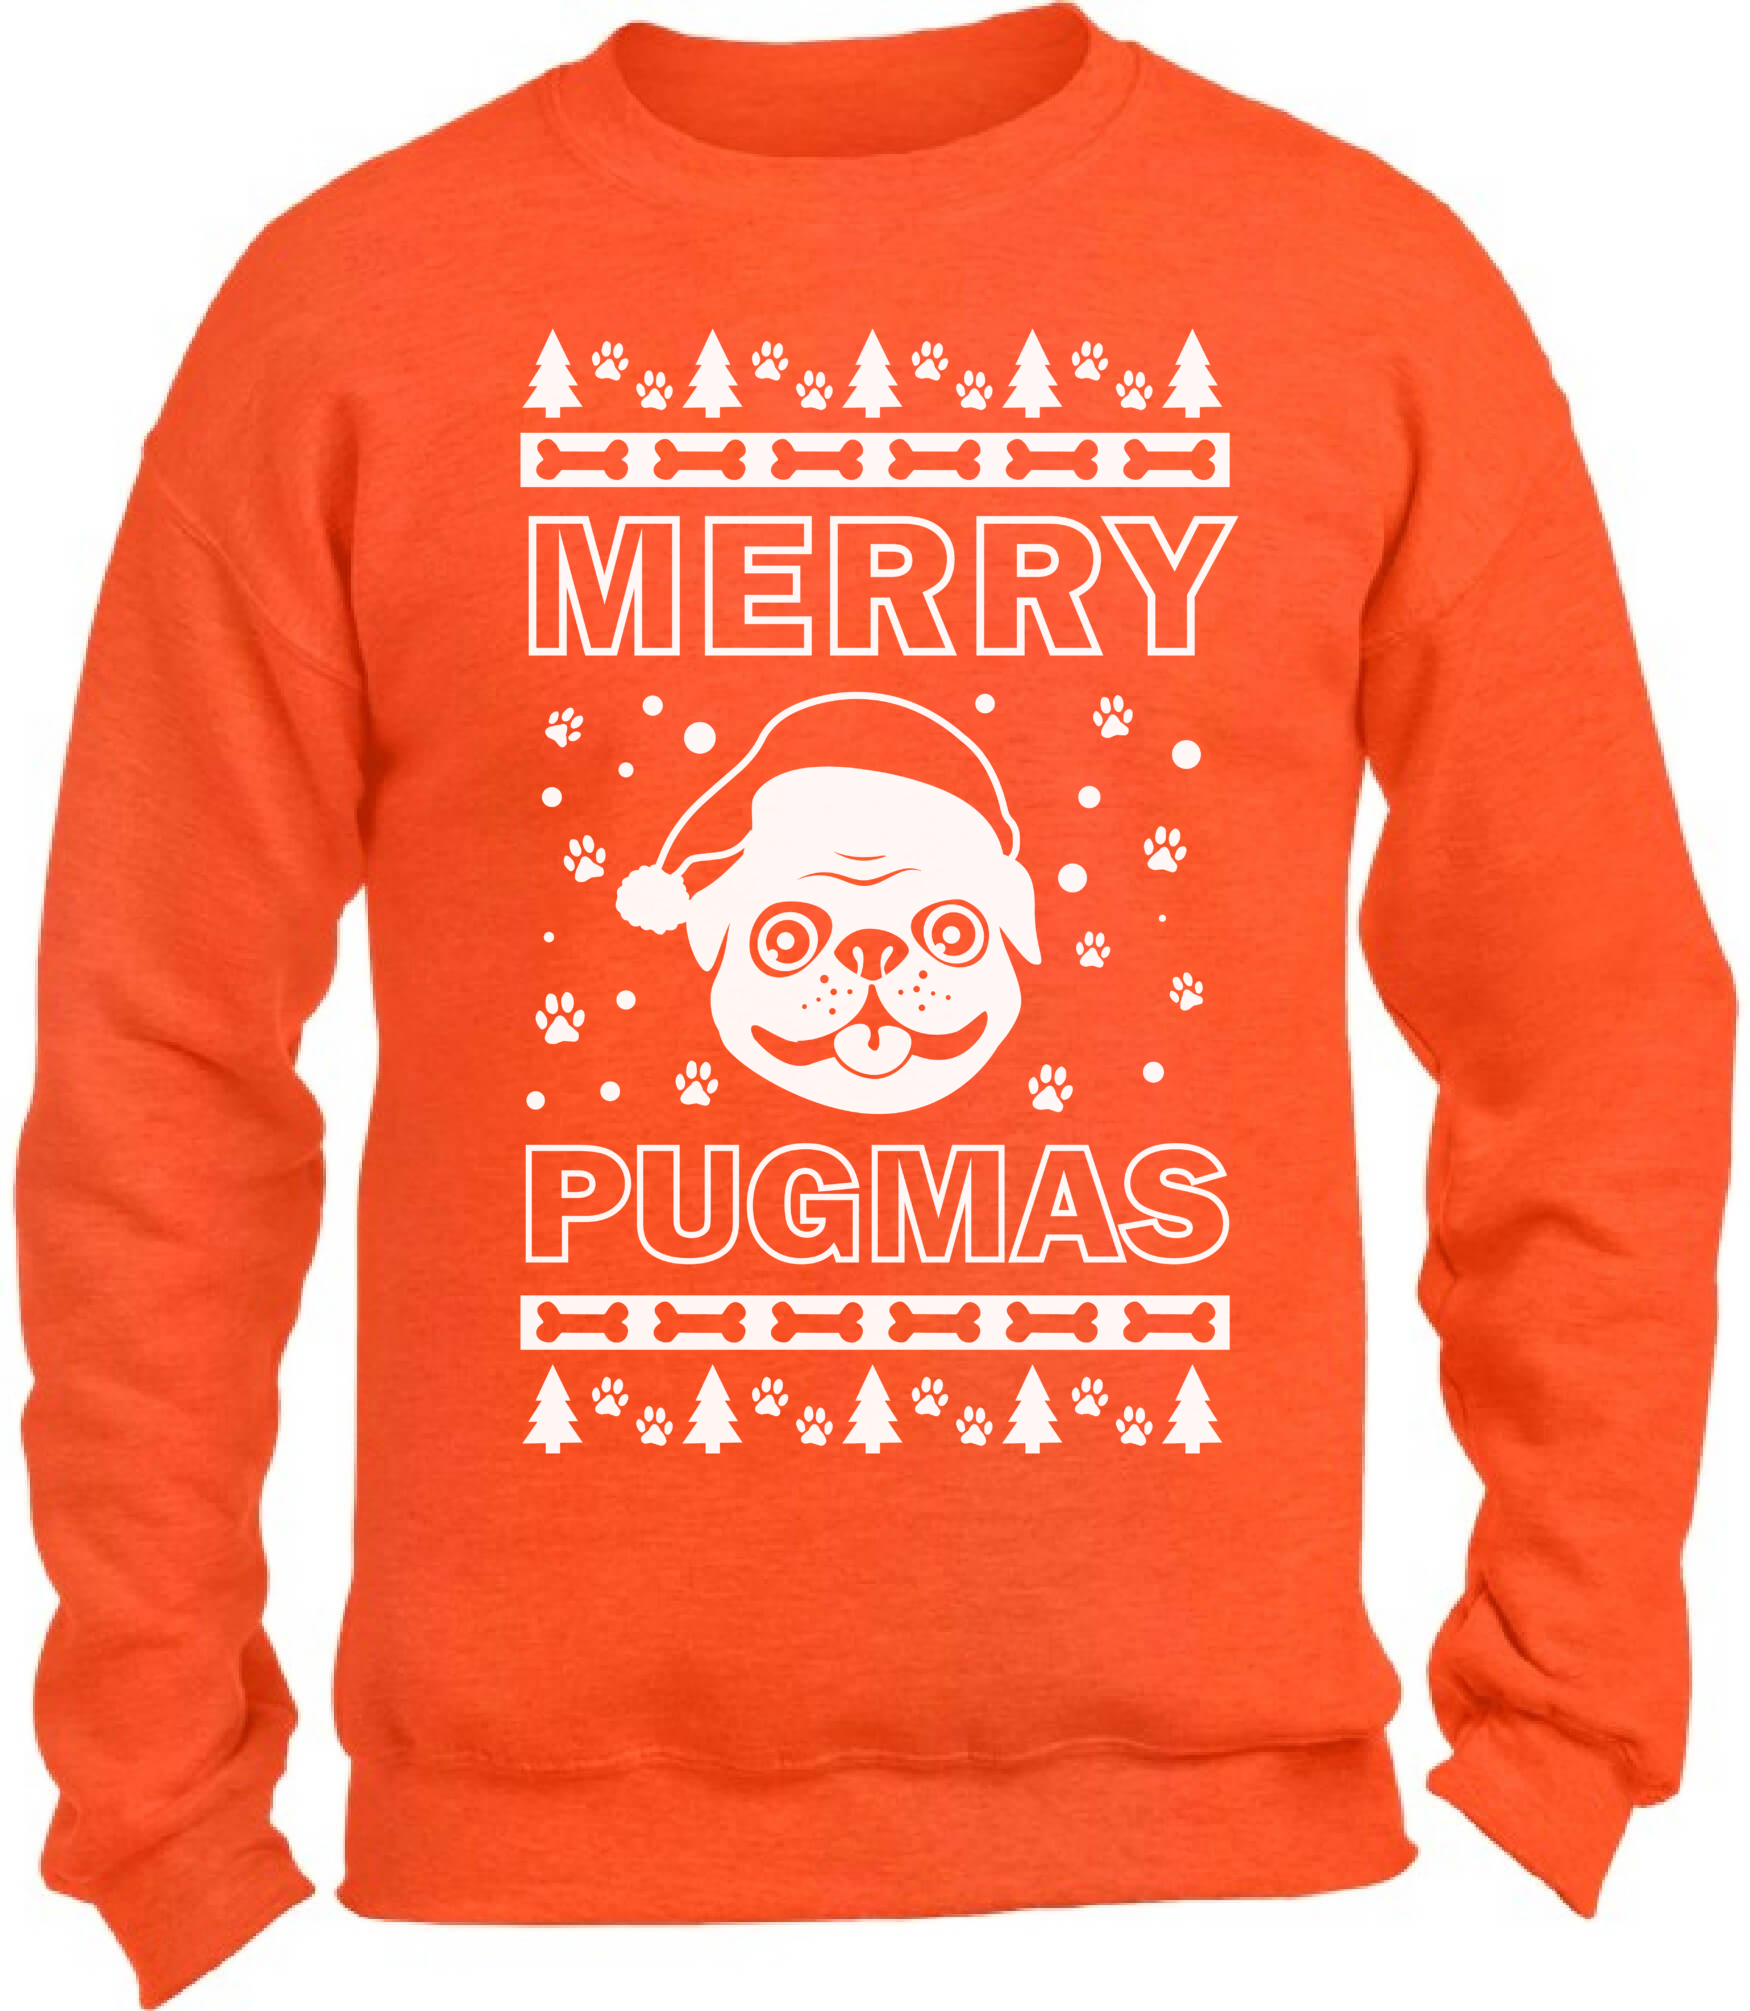 Merry Pugmas Christmas Sweatshirt Funny Pug Dog Santa Christmas ...